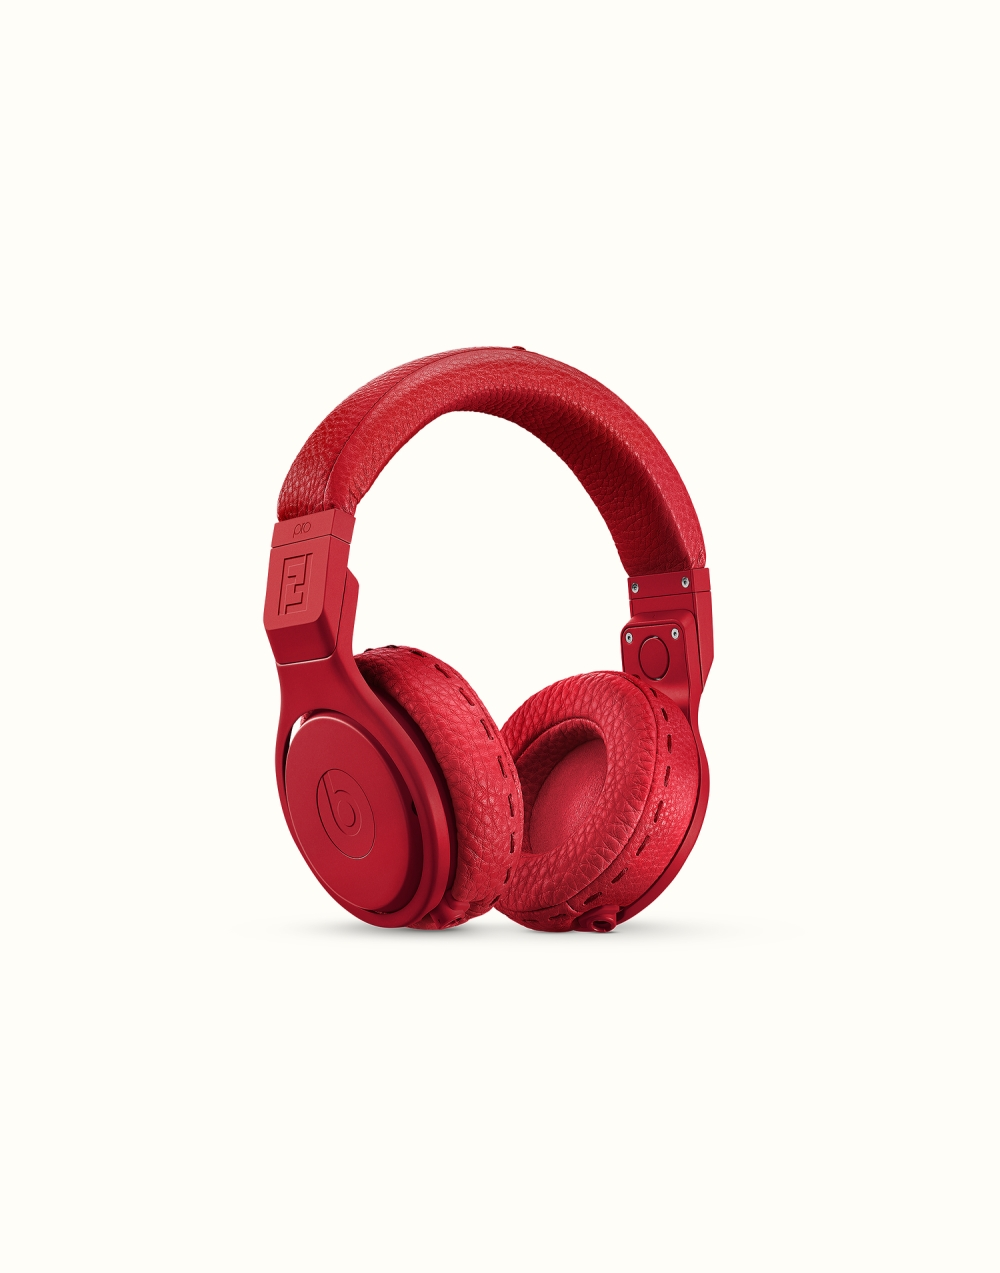 00f678e9fa08 Beats is famous for its headphones and its premium sound quality. This  special collection has the headphone wrapped in Roman leather. Price: POA.